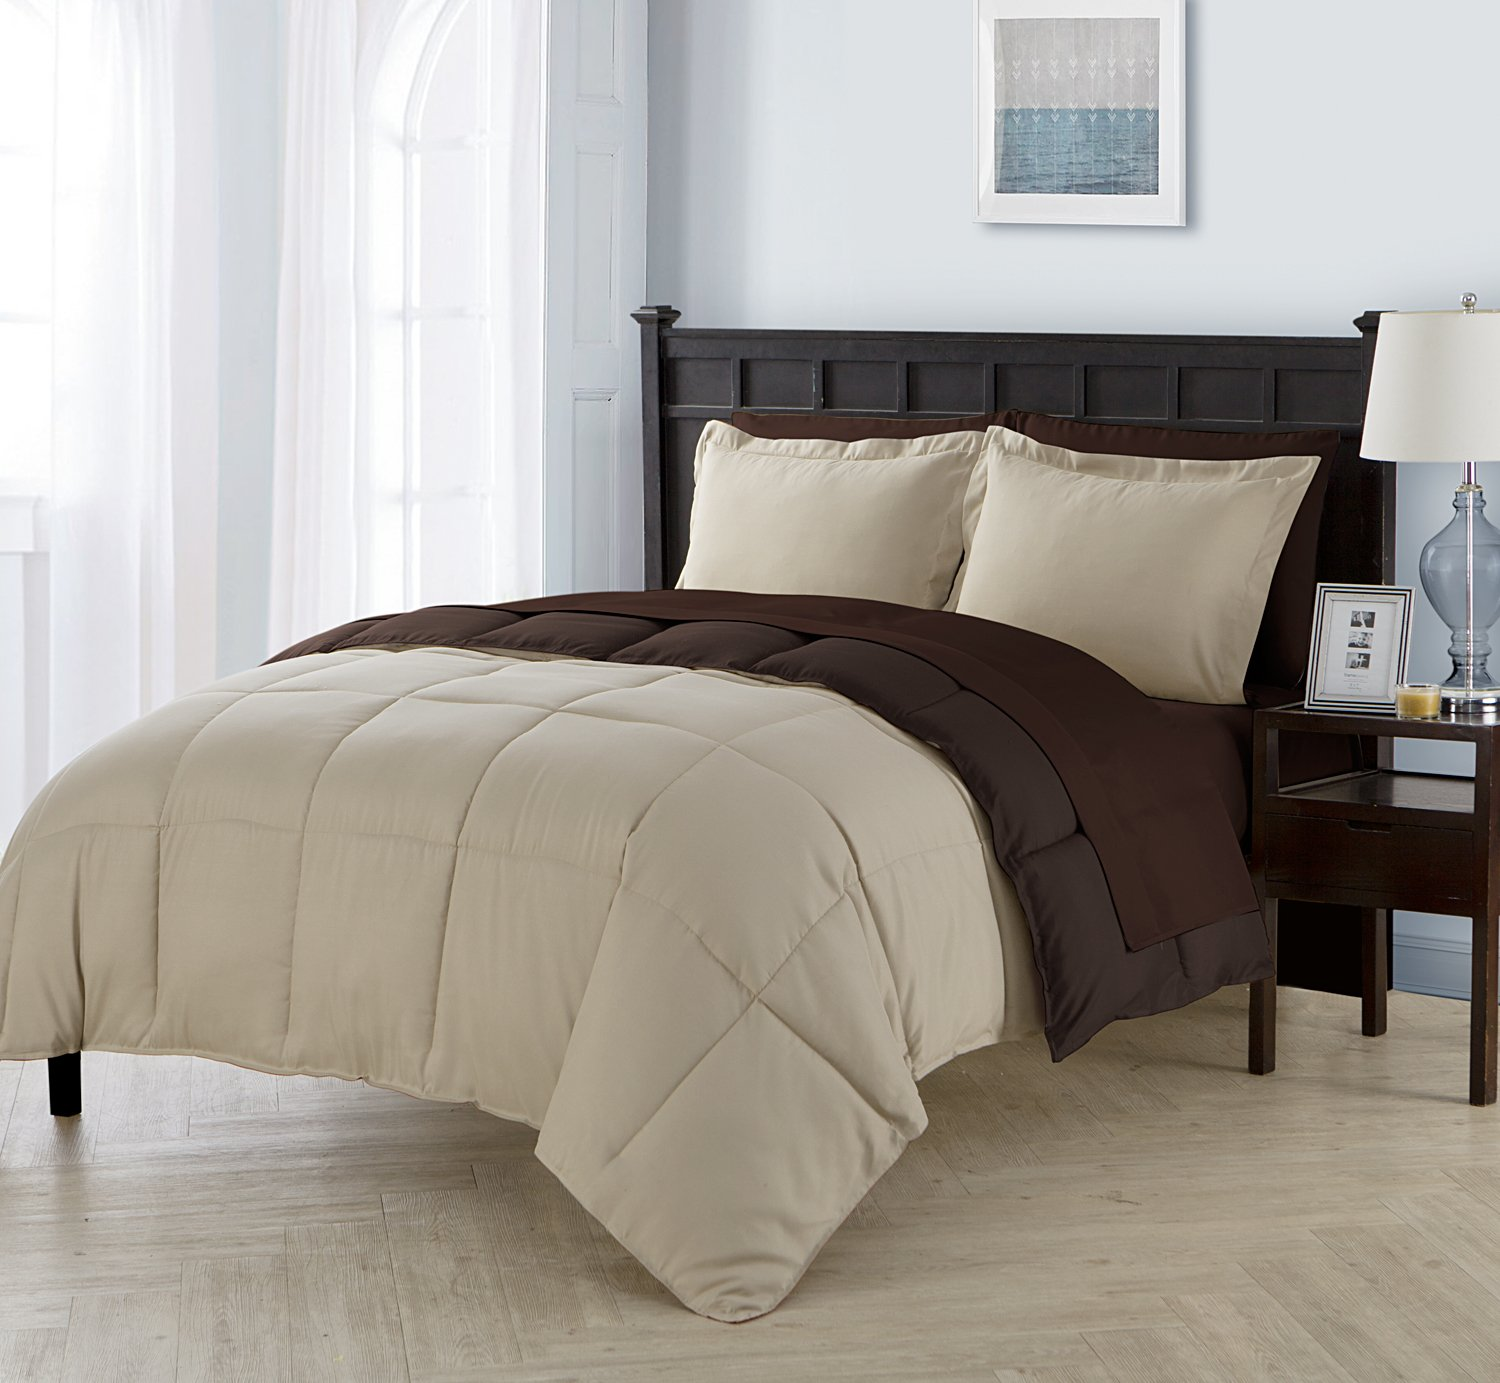 VCNY Home Lincoln 7 Piece Bed-In-A-Bag Comforter Set, Queen, Taupe/Brown